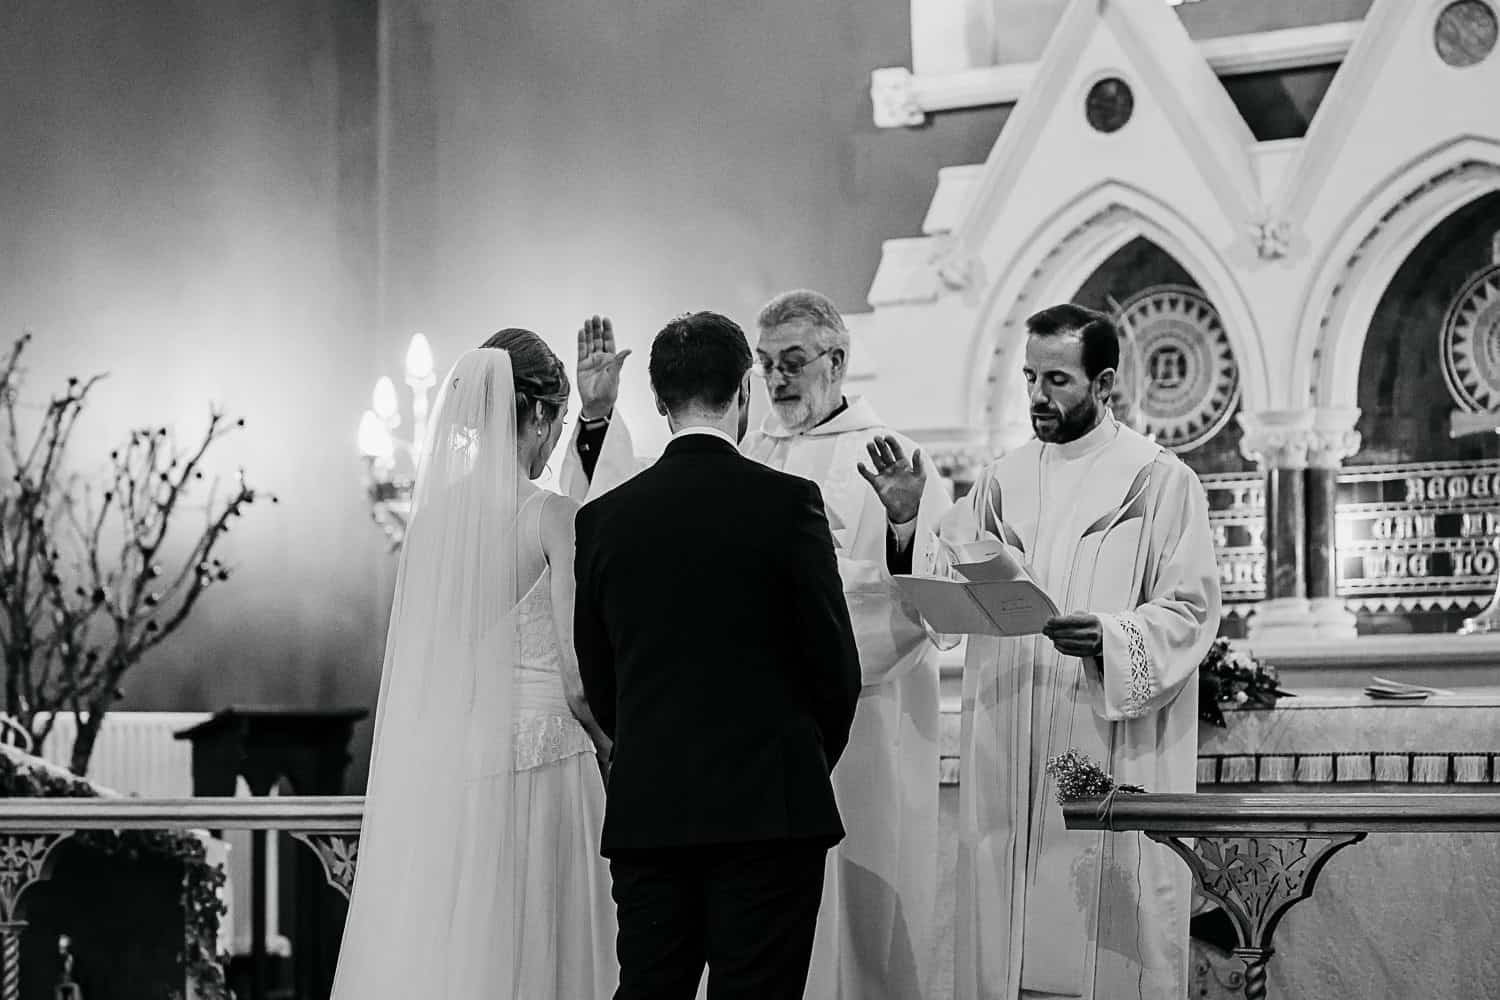 priests giving blessing to wedding couple